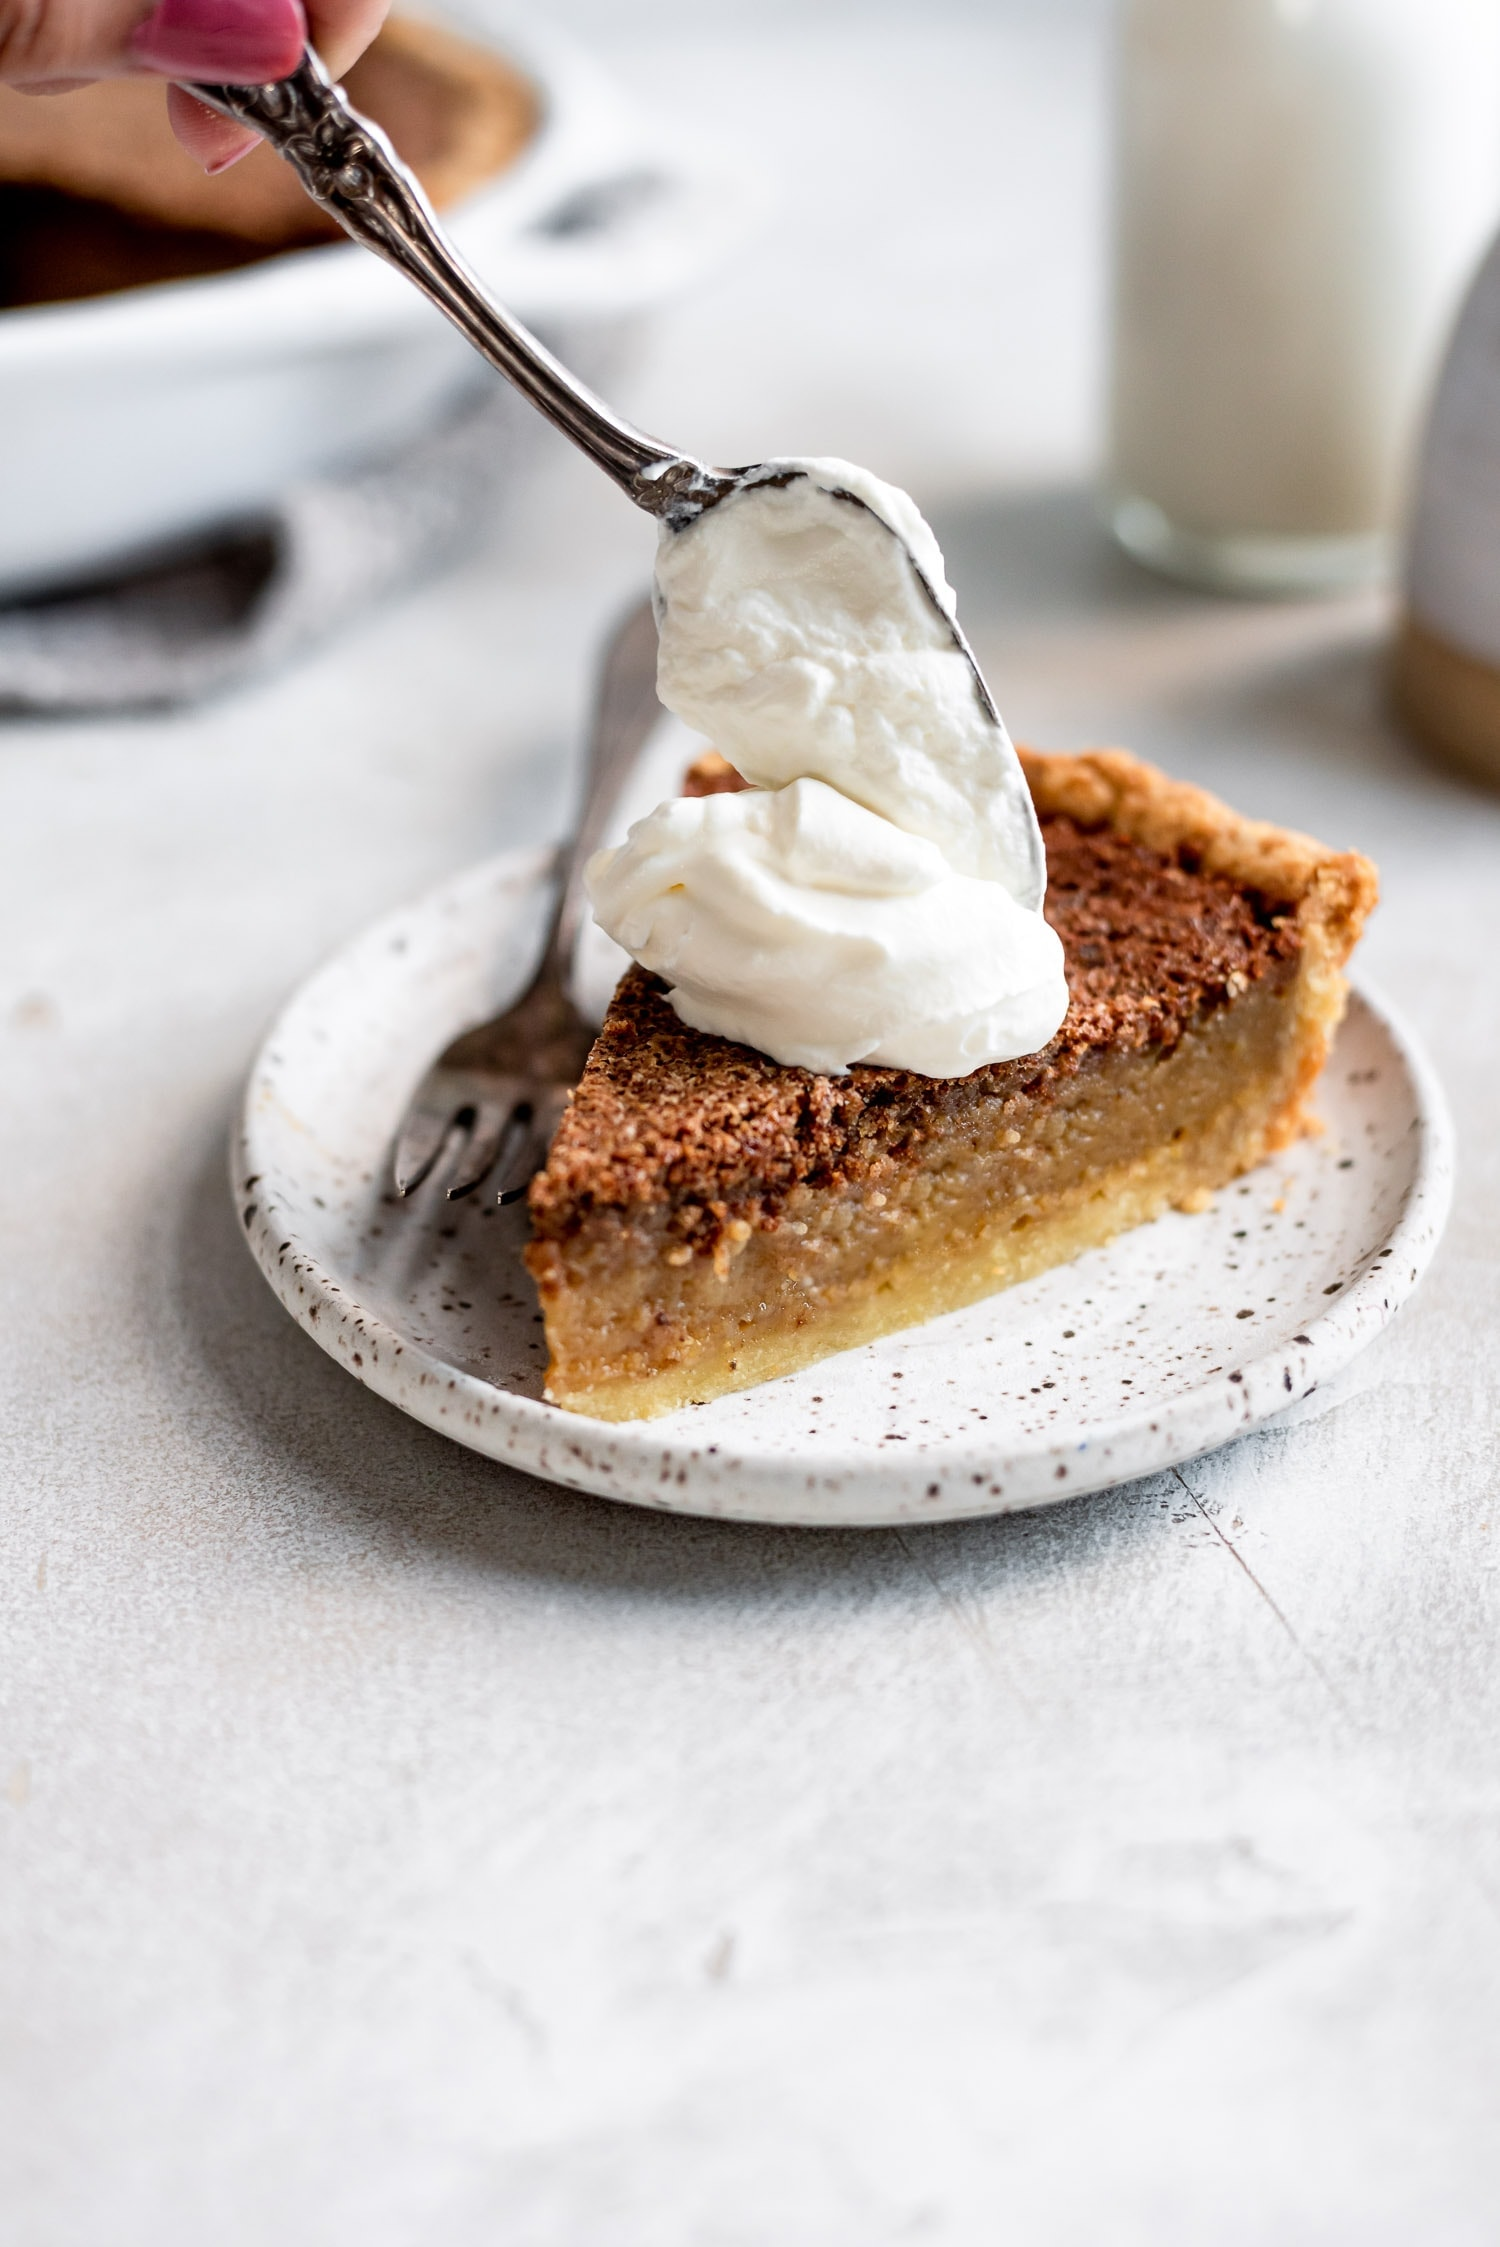 hand dolloping whipped cream onto slice of pie